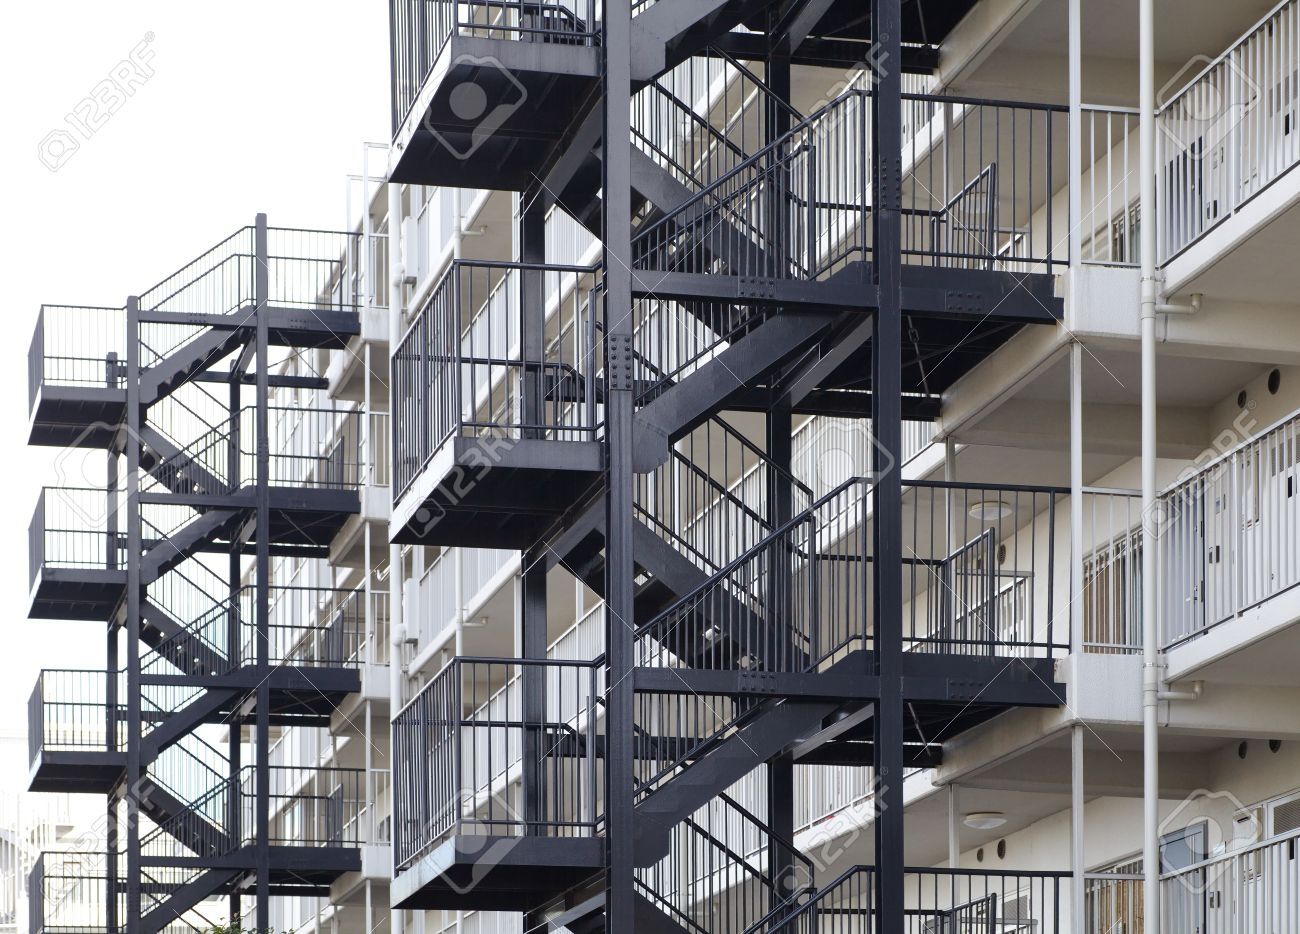 Metal Fire Escape Outside Apartment Building For Emergency Stock   Steel Fire Escape Stairs   Architectural   Internal   Industrial   Emergency   Fire Exit